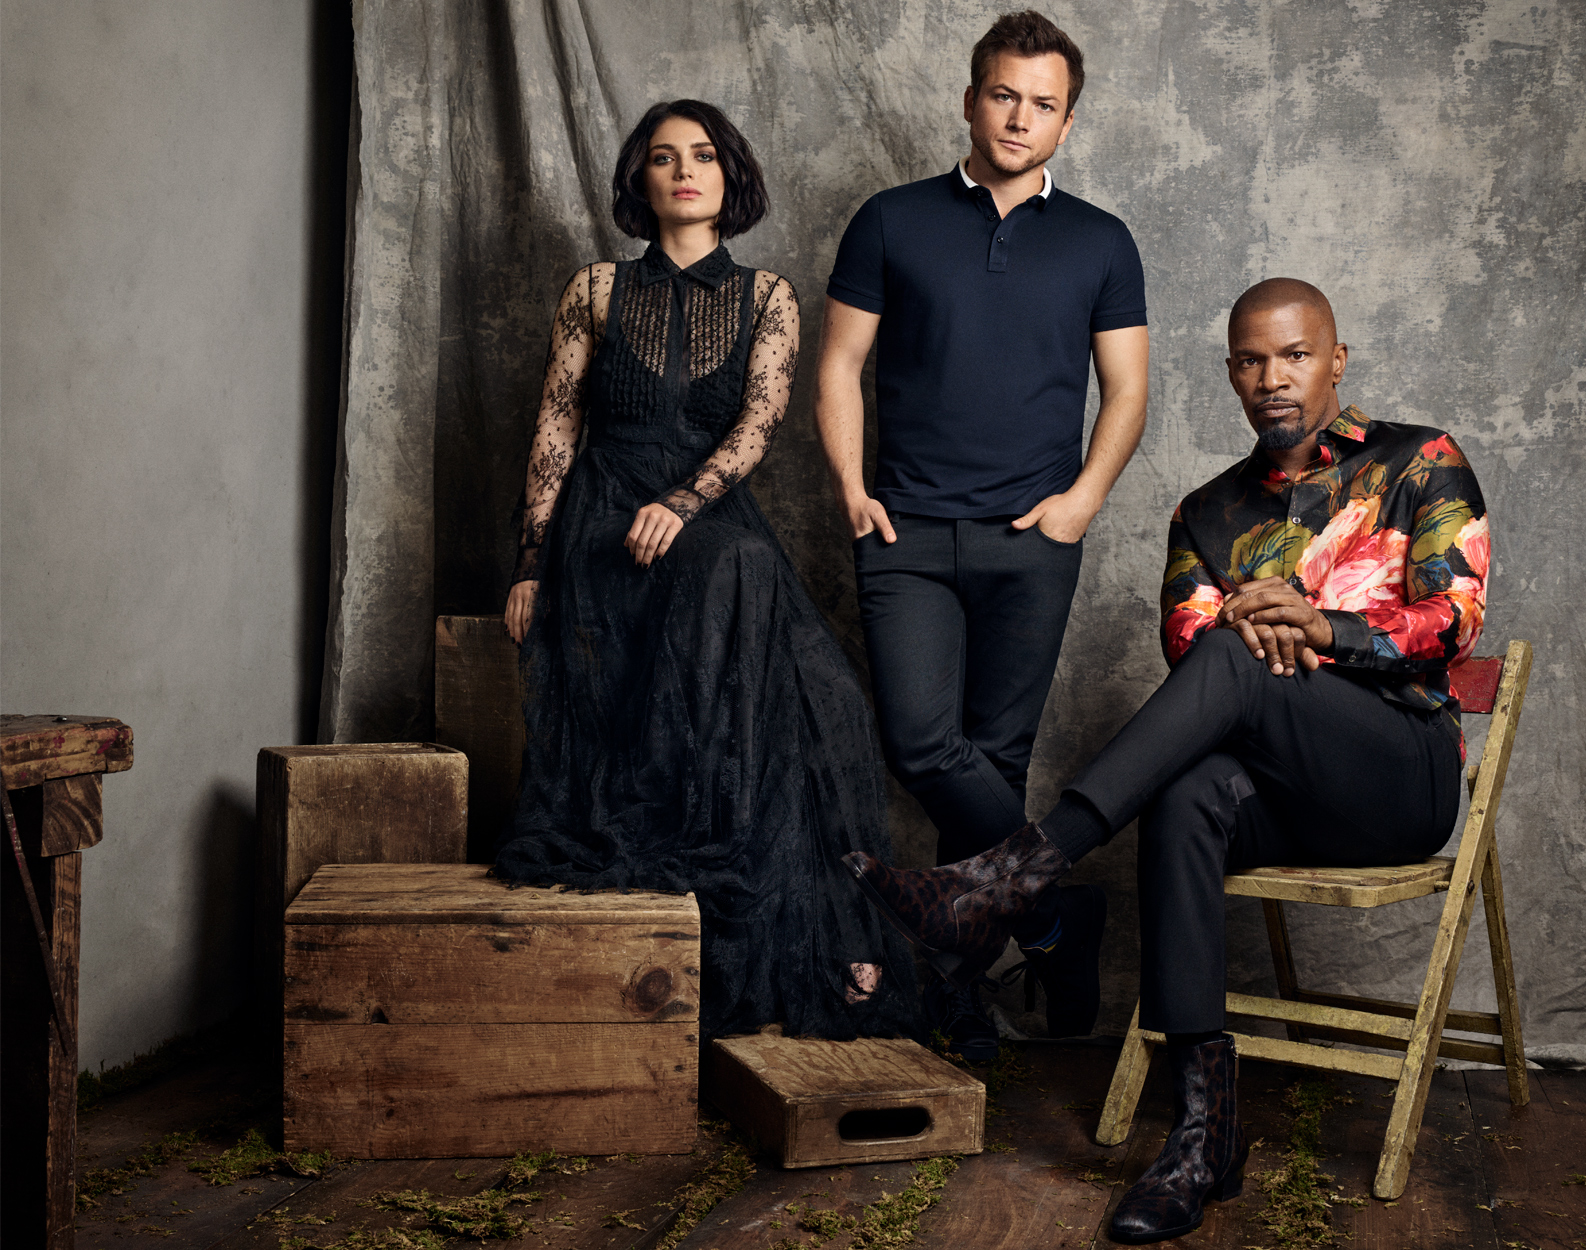 Celebrity Photographer Michael Schwartz: Eve Hewson, Taron Egerton, Jamie Foxx for Lionsgate Robin Hood movie